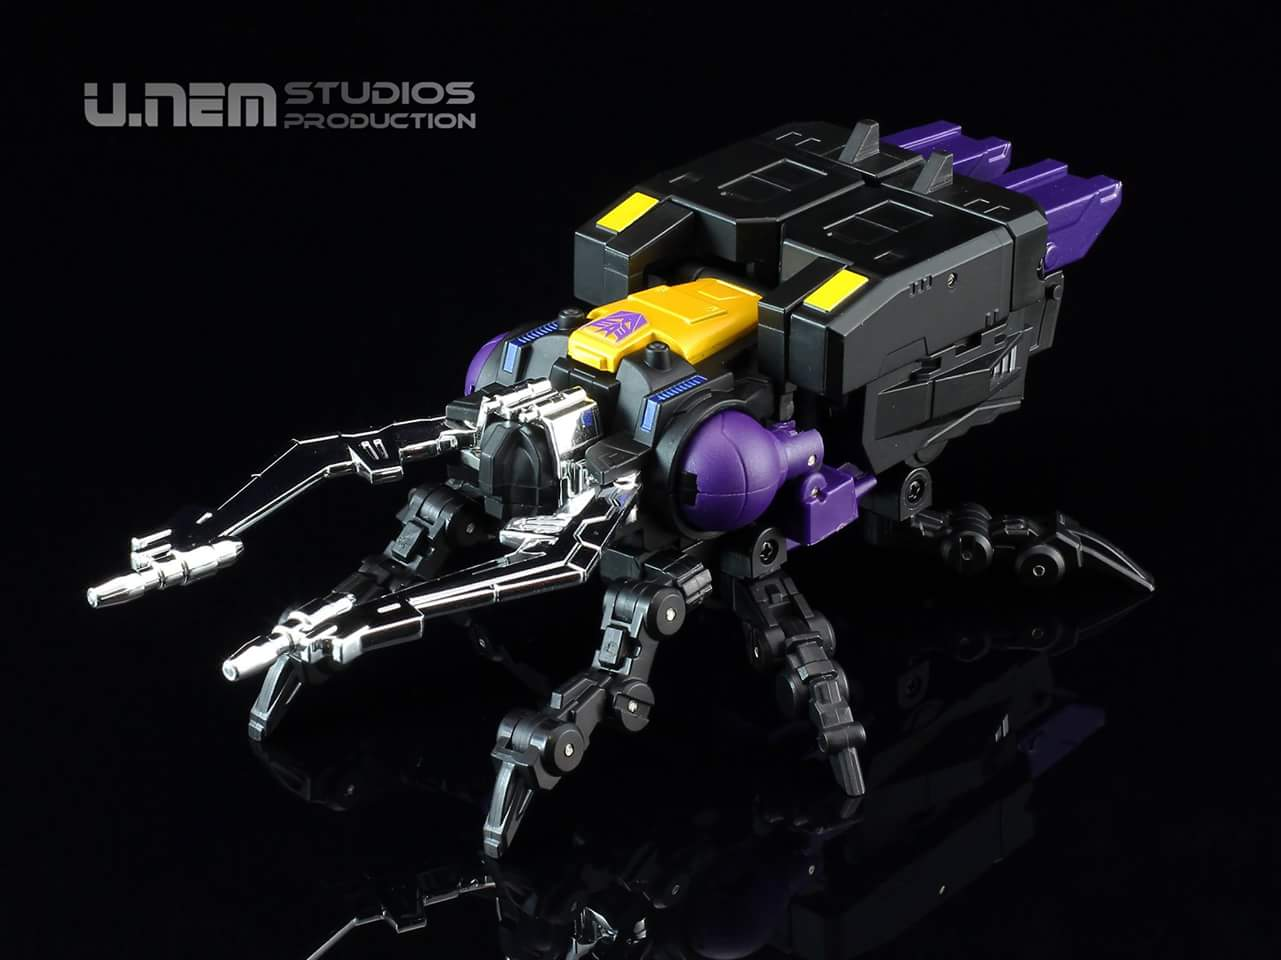 [Fanstoys] Produit Tiers - Jouet FT-12 Grenadier / FT-13 Mercenary / FT-14 Forager - aka Insecticons - Page 3 G6lIaBGD